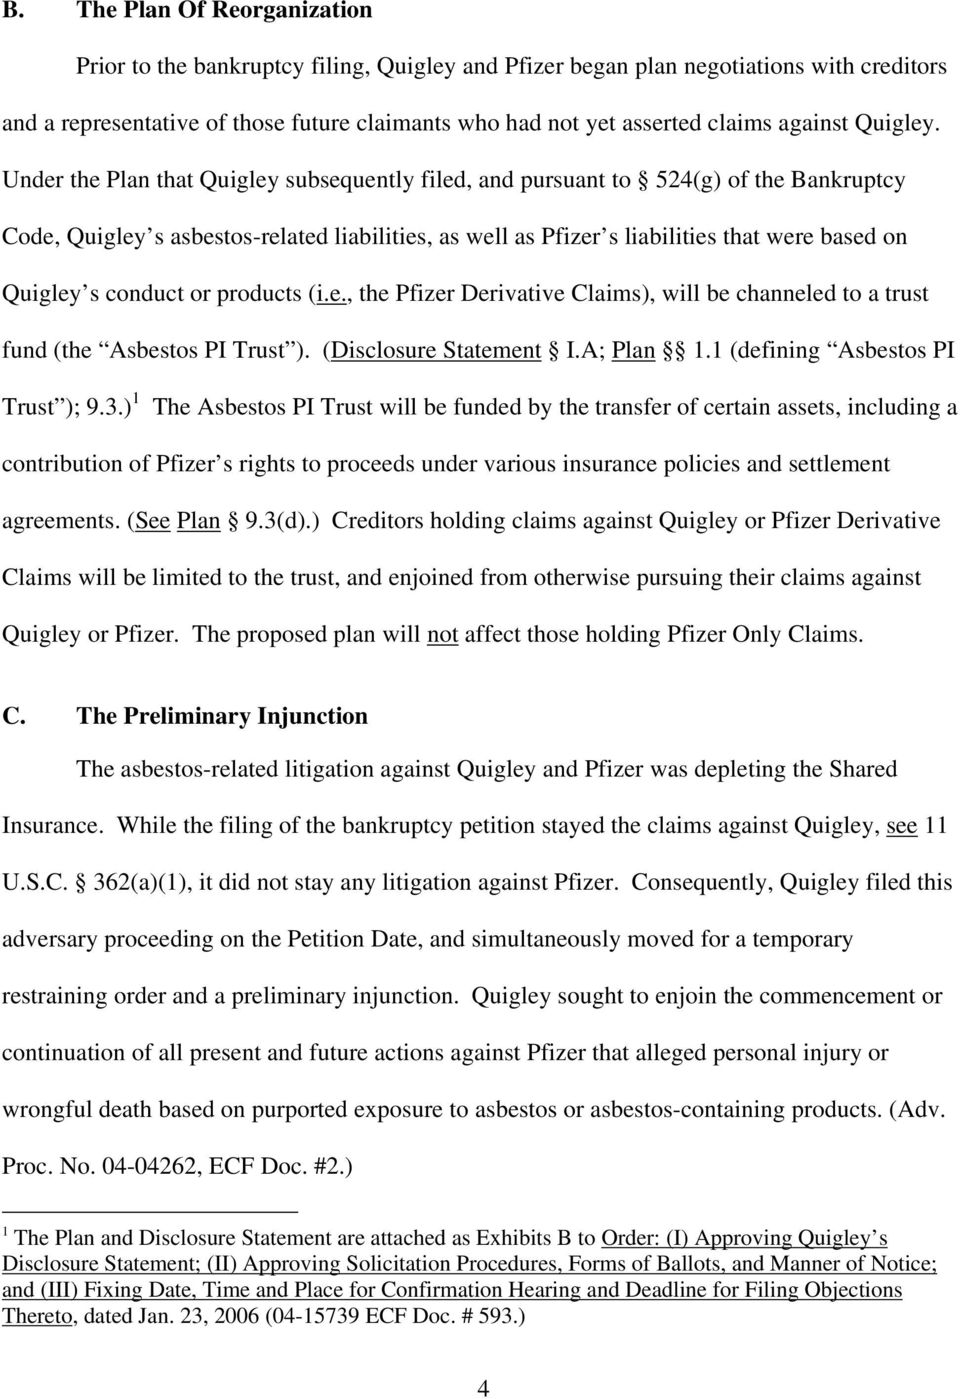 Under the Plan that Quigley subsequently filed, and pursuant to 524(g) of the Bankruptcy Code, Quigley s asbestos-related liabilities, as well as Pfizer s liabilities that were based on Quigley s